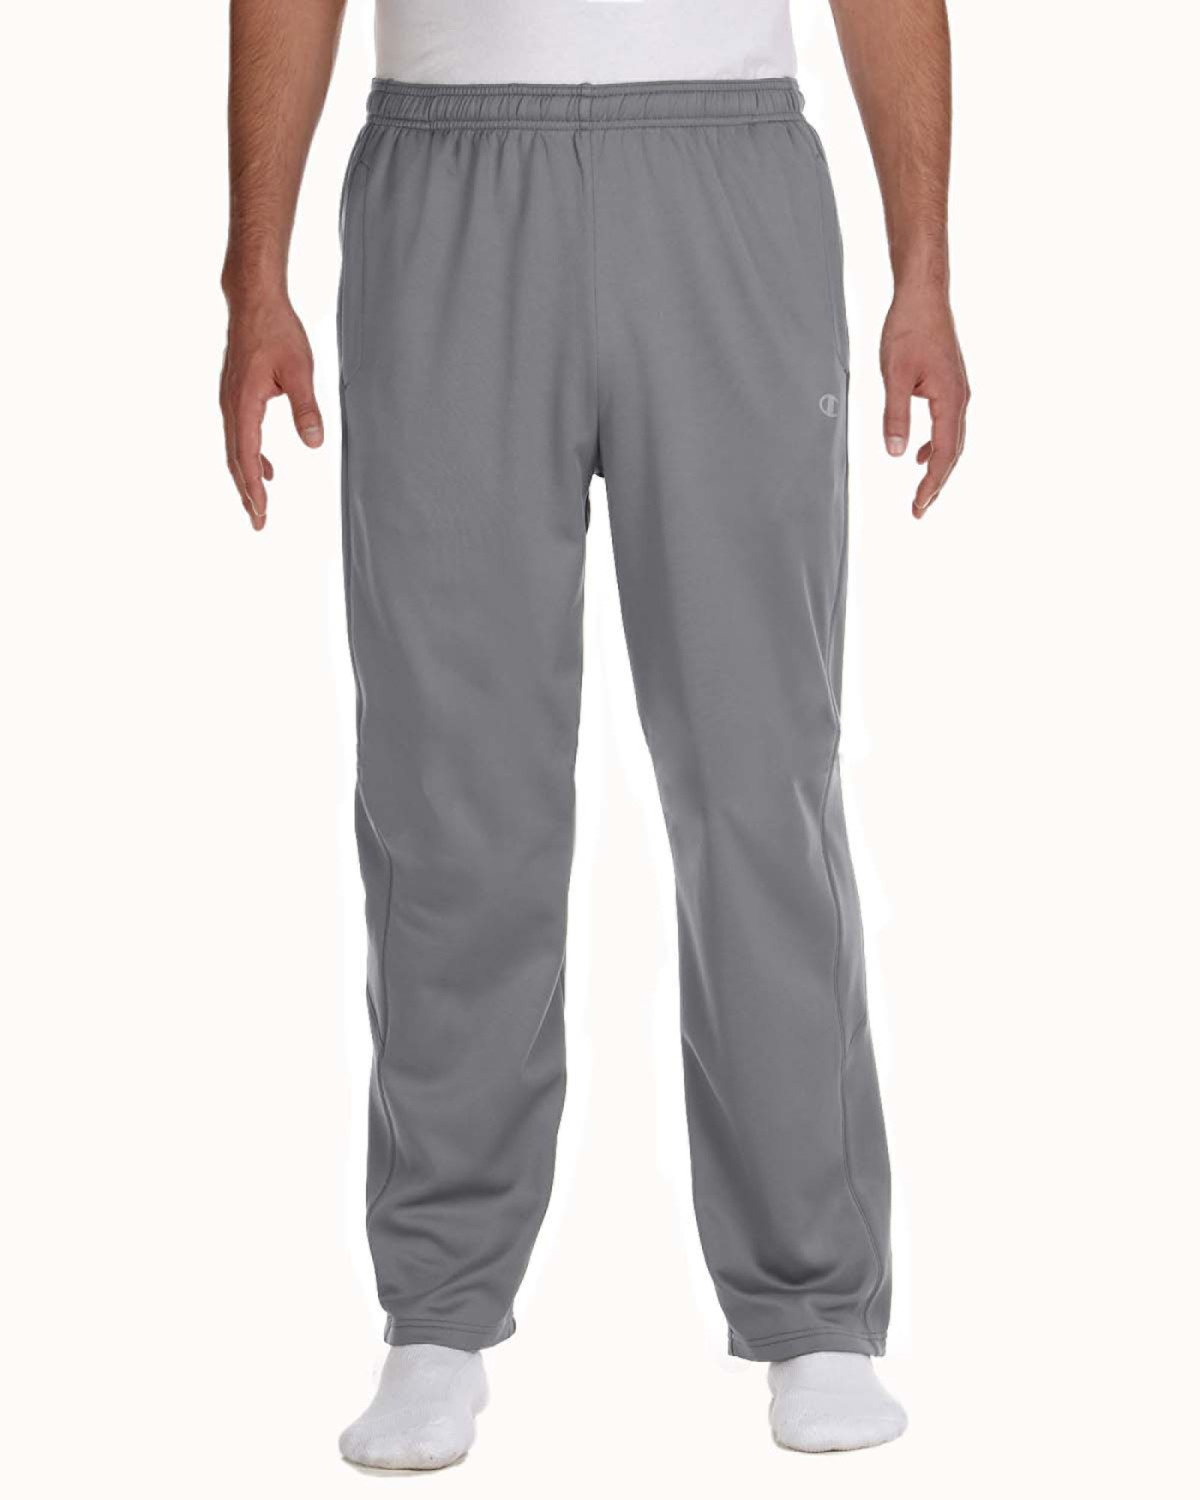 Champion Performance Pants - S280